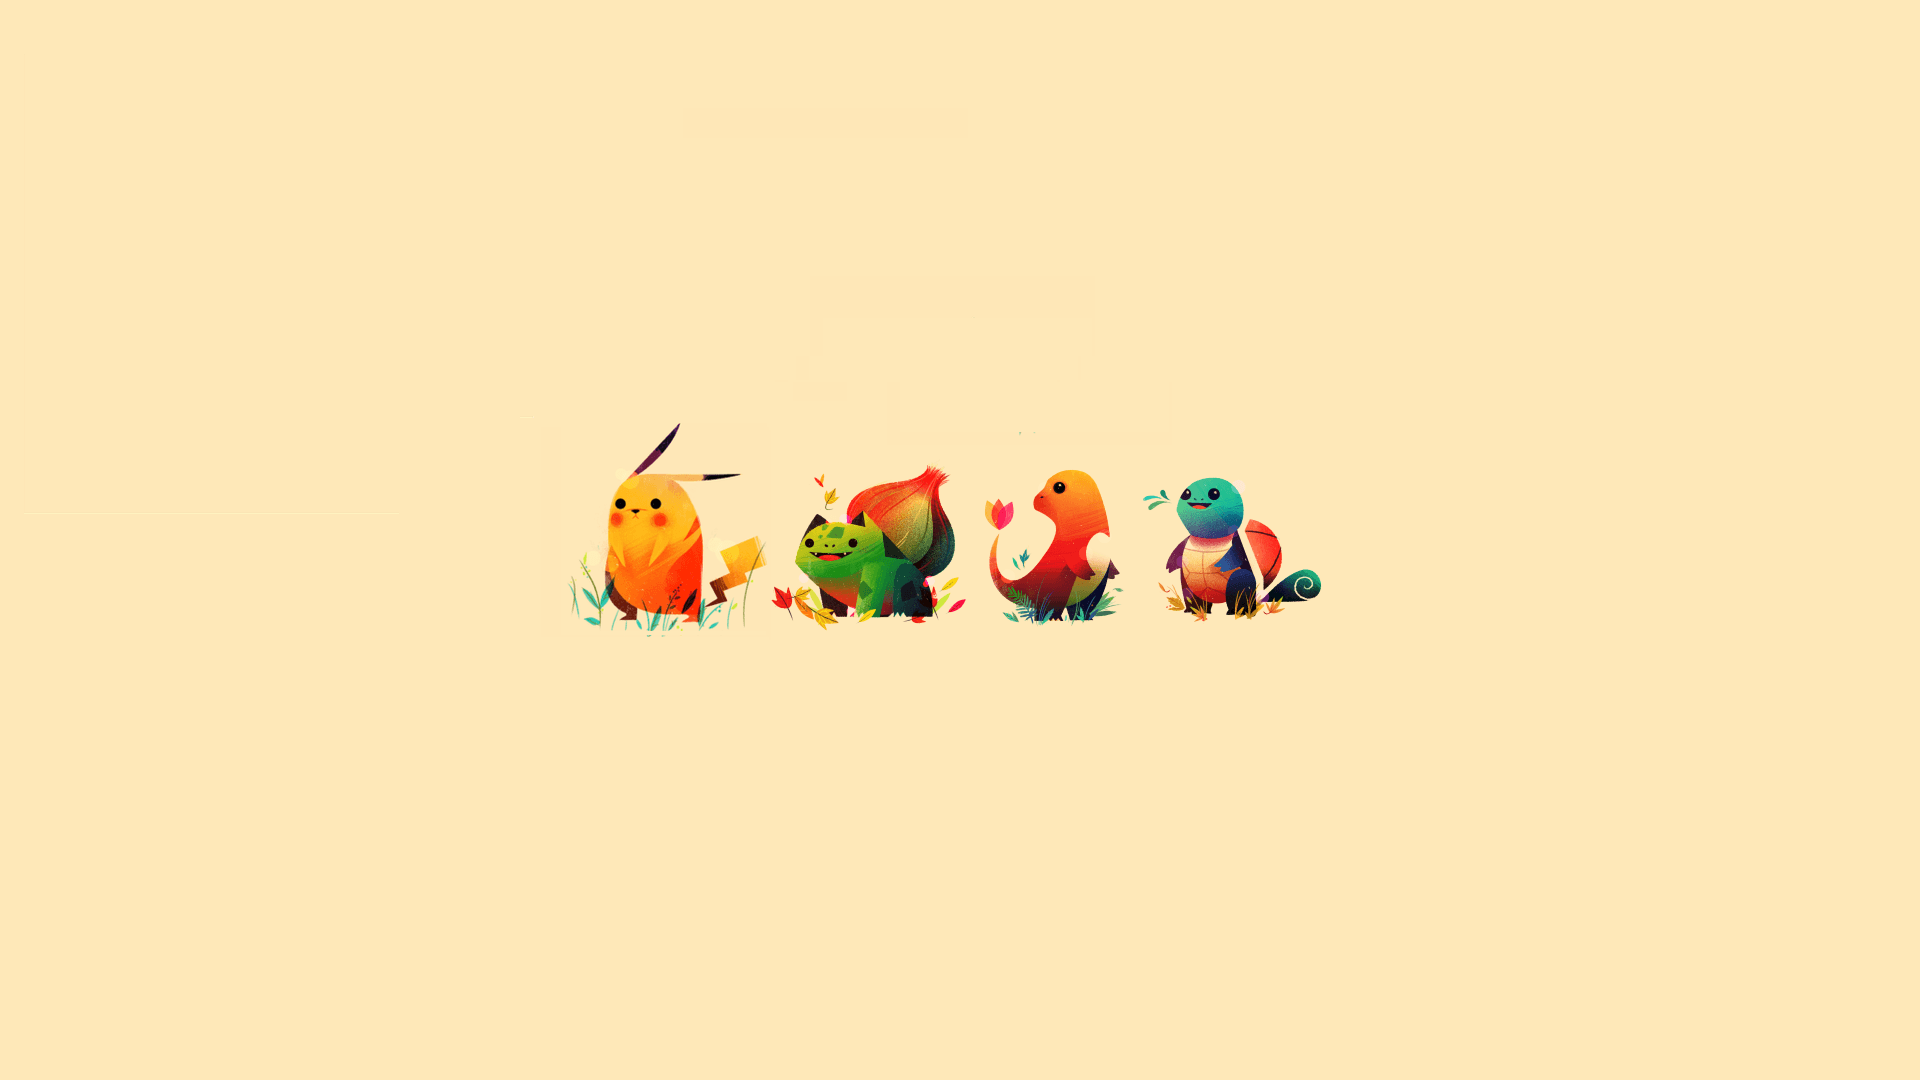 68 Charmander (Pokémon) HD Wallpapers | Background Images ...